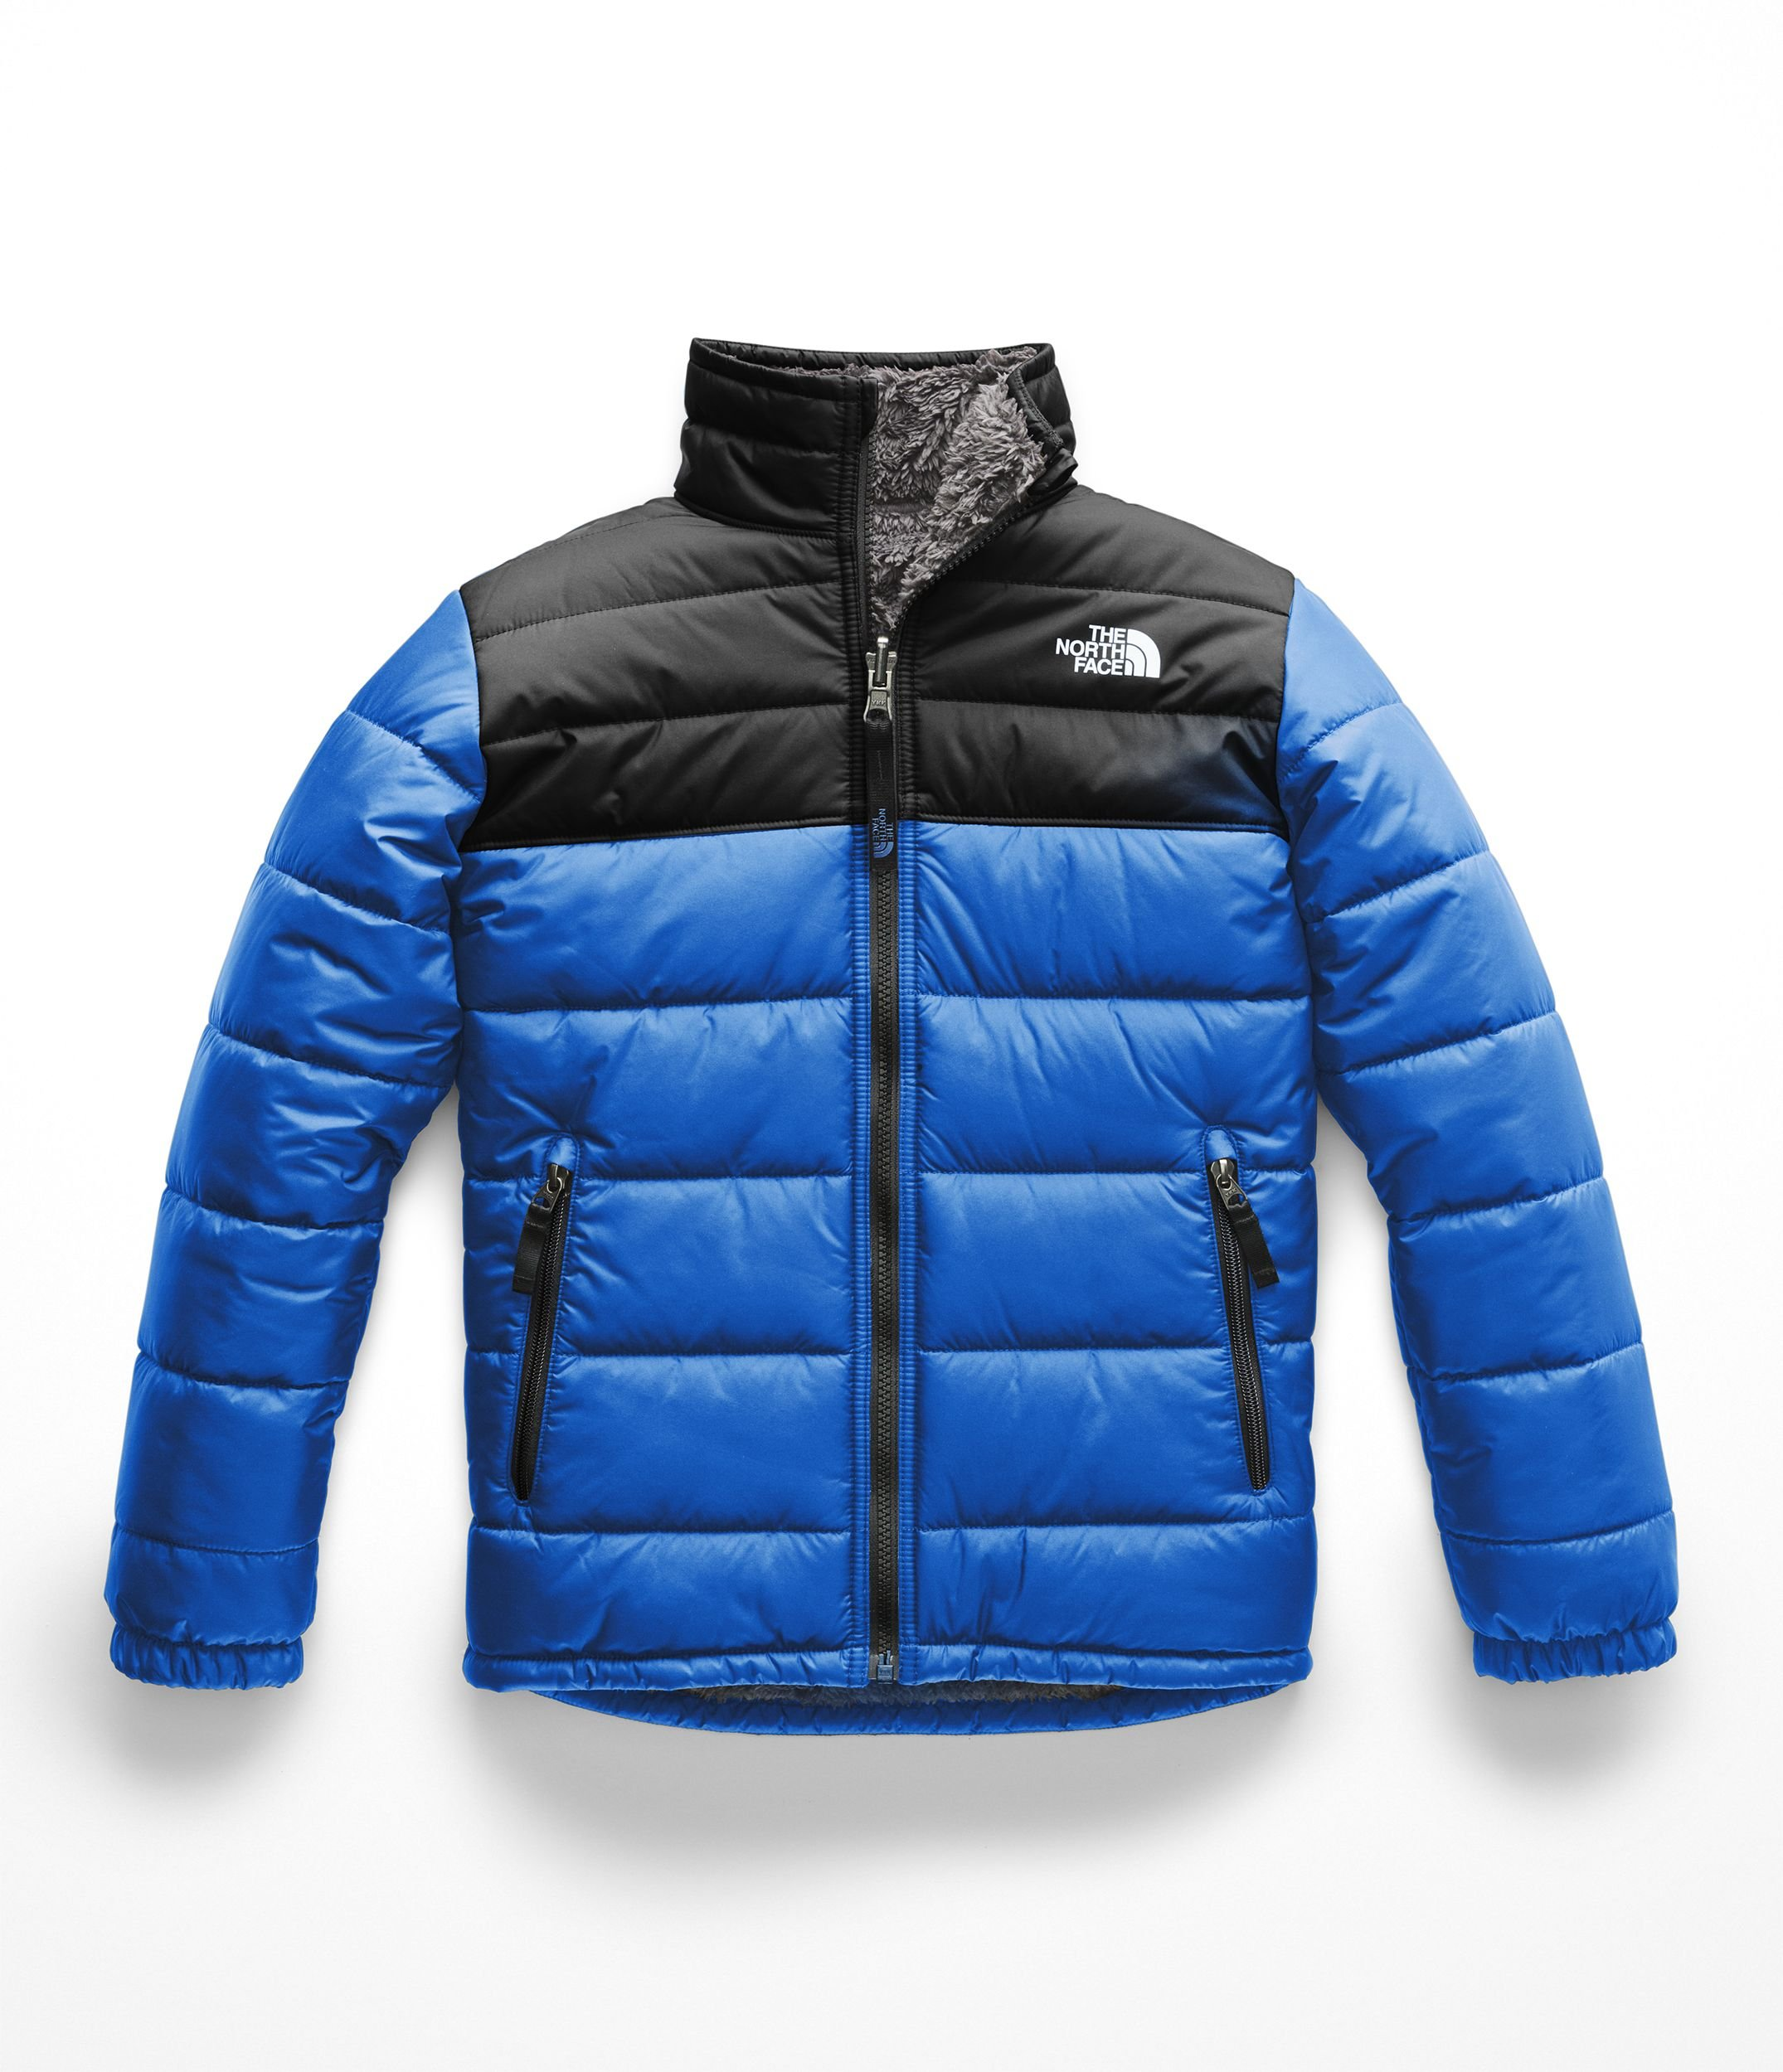 The North Face Boys Reversible Mount Chimborazo Jacket - Turkish Sea - S